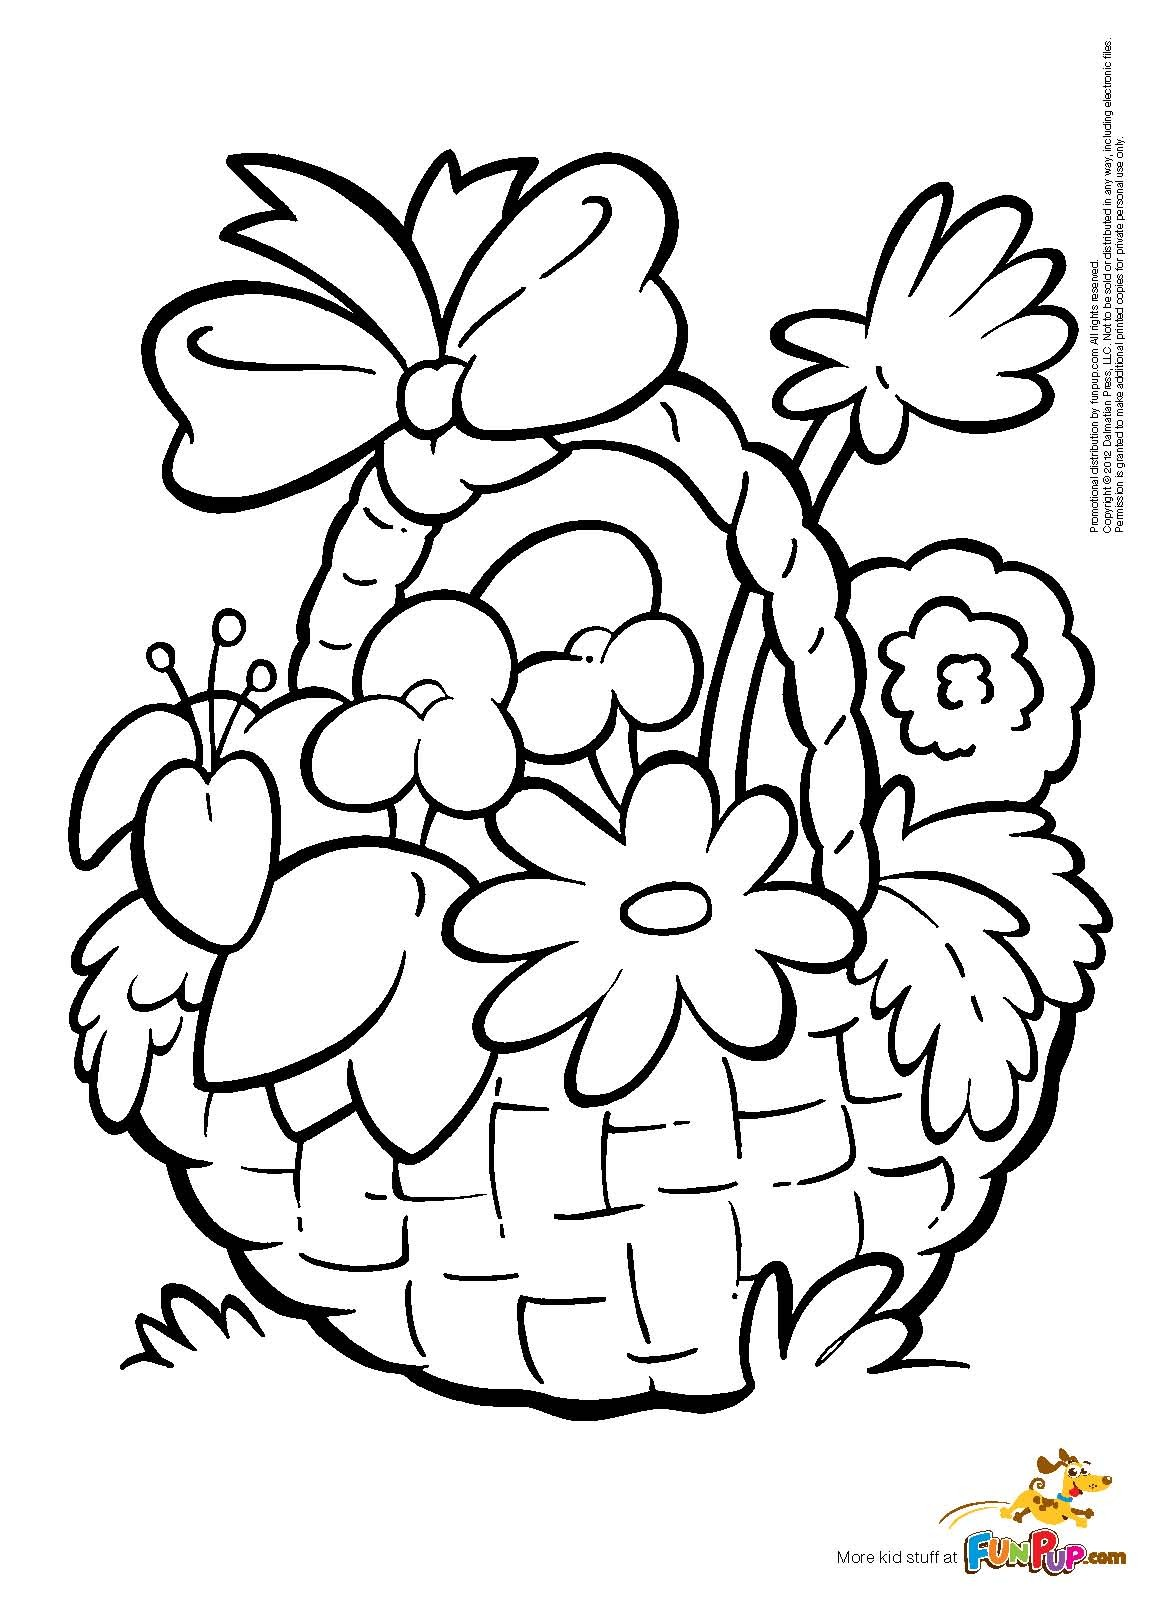 1163x1613 Flower Basket Coloring Page Free Printable Coloring Pages